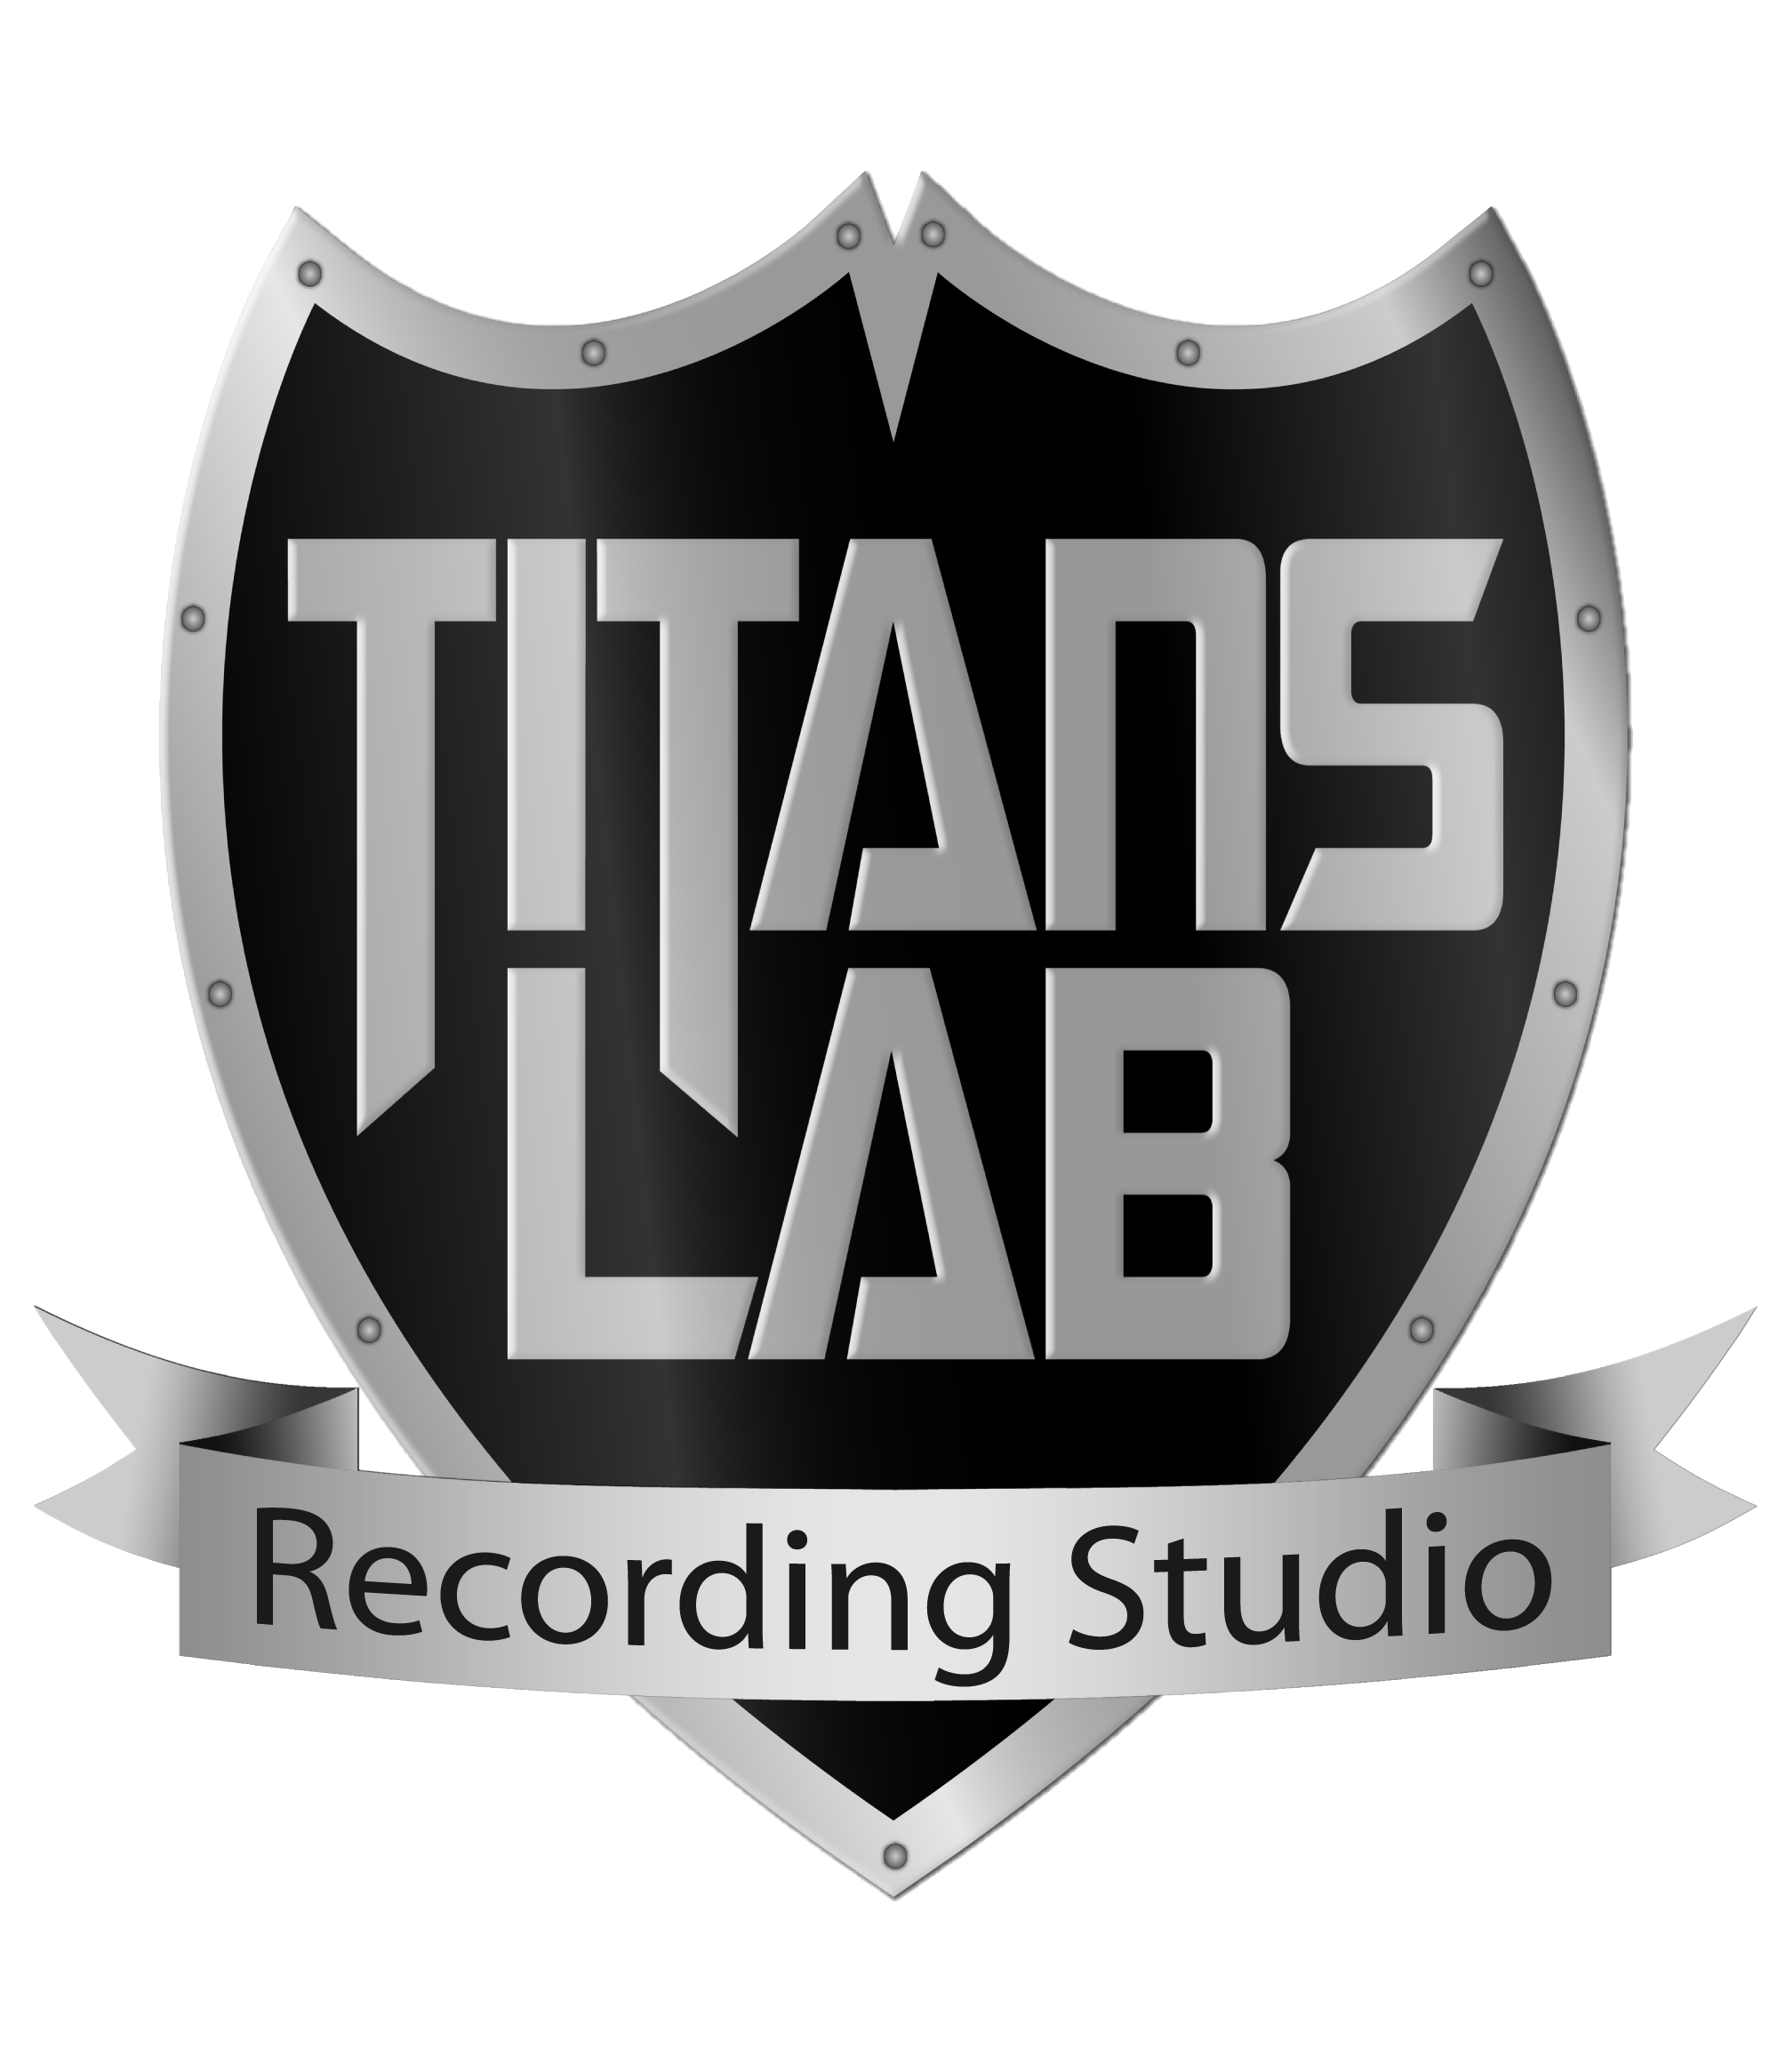 TITANS LAB Recording Studio